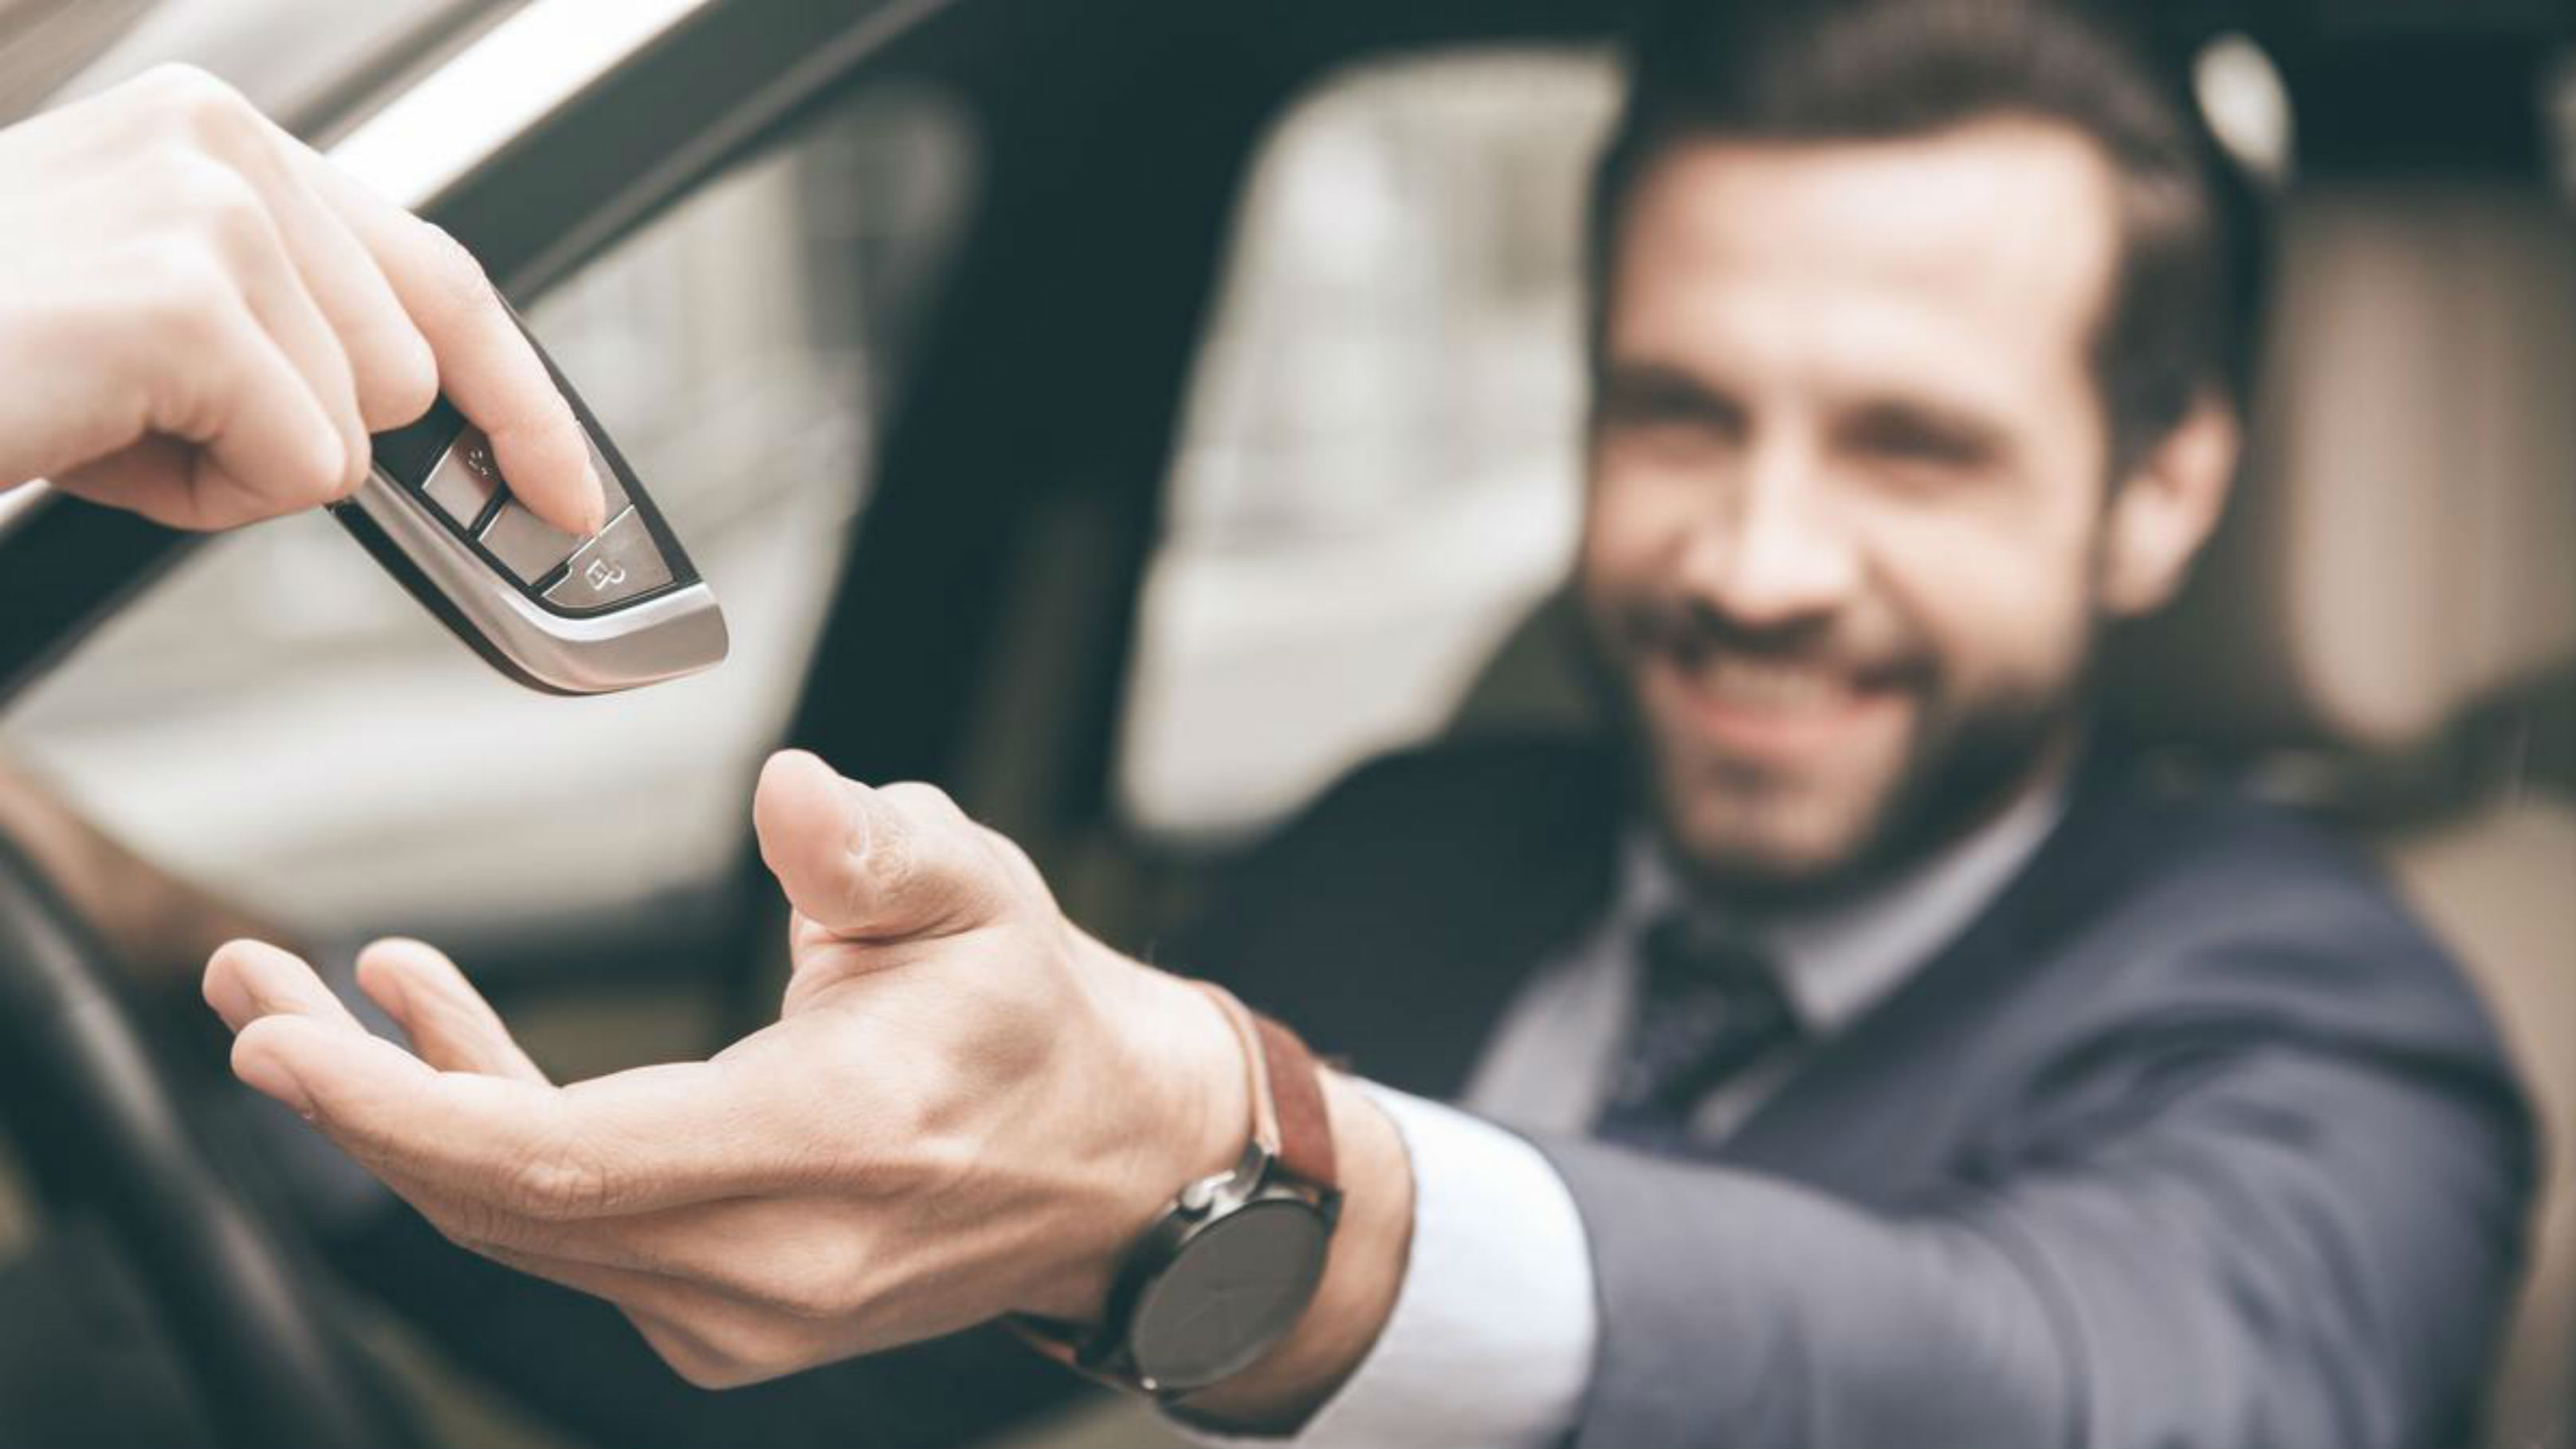 Dealers Voice: Don't Avoid the Test Drive